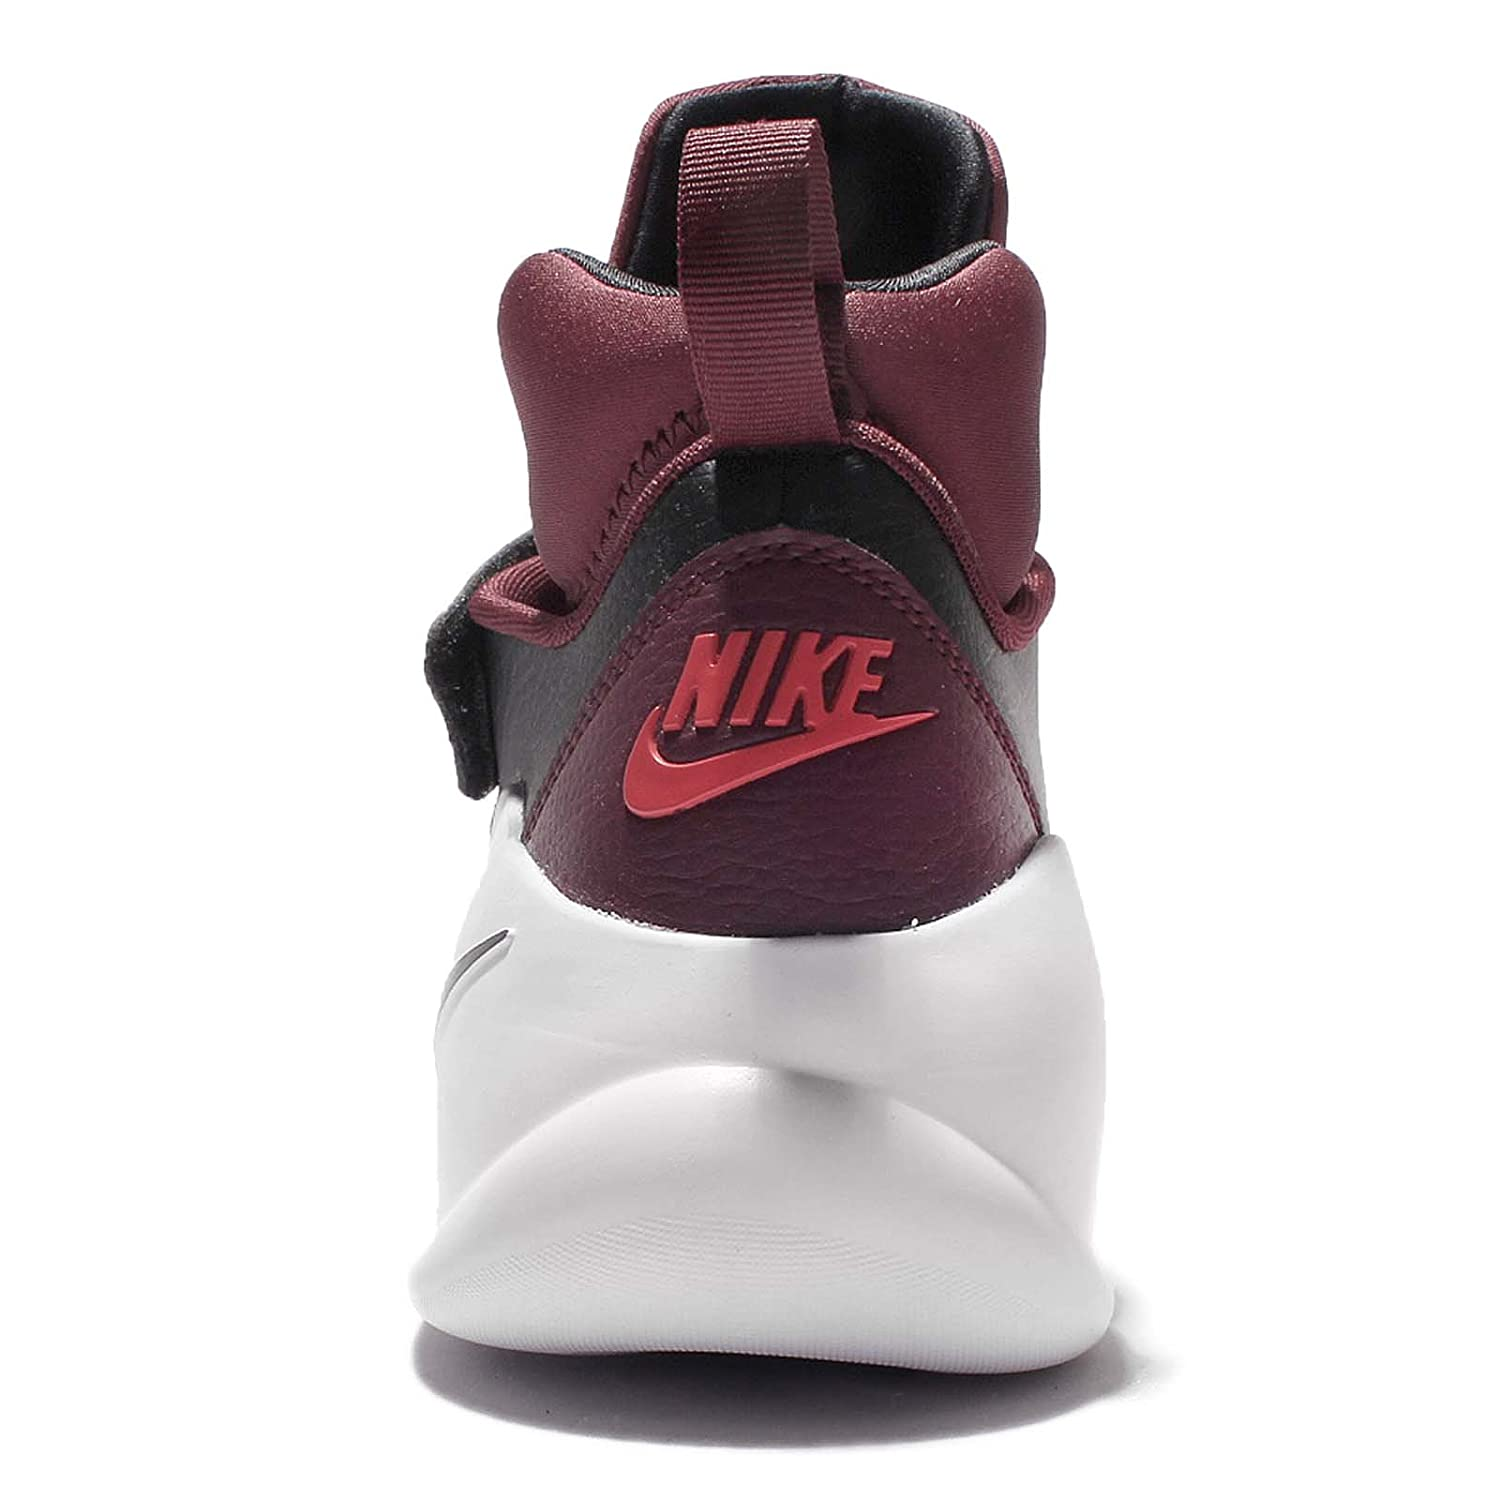 Nike Men s Kwazi NIGHT MAROON BLACK-ACTION RED-WHITE NIGHT MAROON/BLACK-ACTION  RED-WHITE 10.5 D(M) US: Amazon.in: Shoes & Handbags